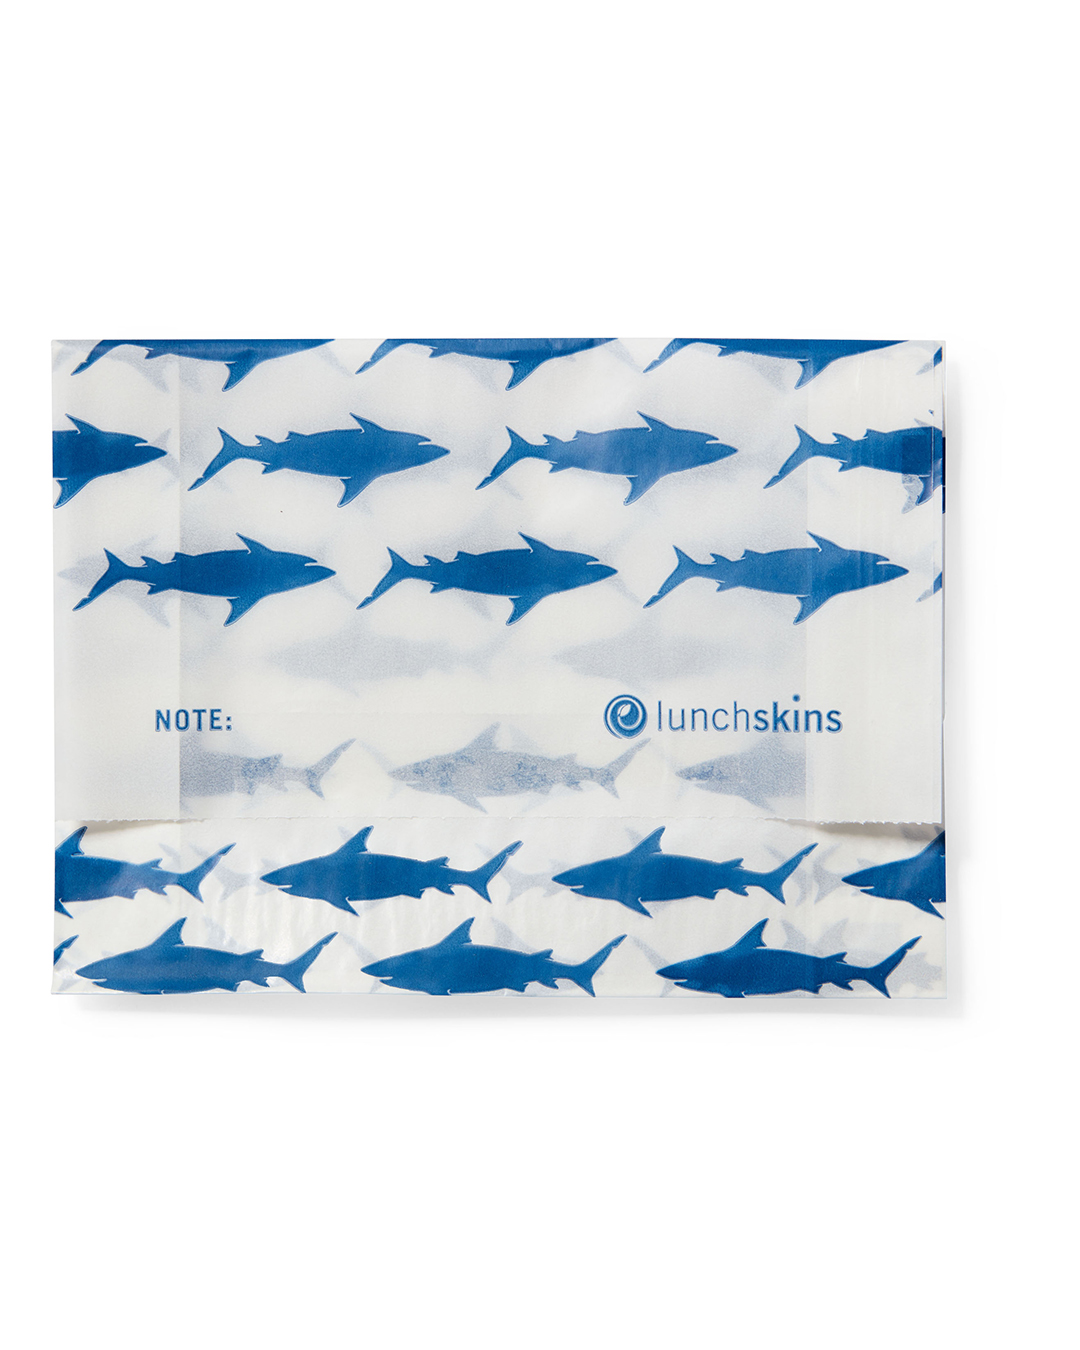 paper sandwich bags with blue sharks